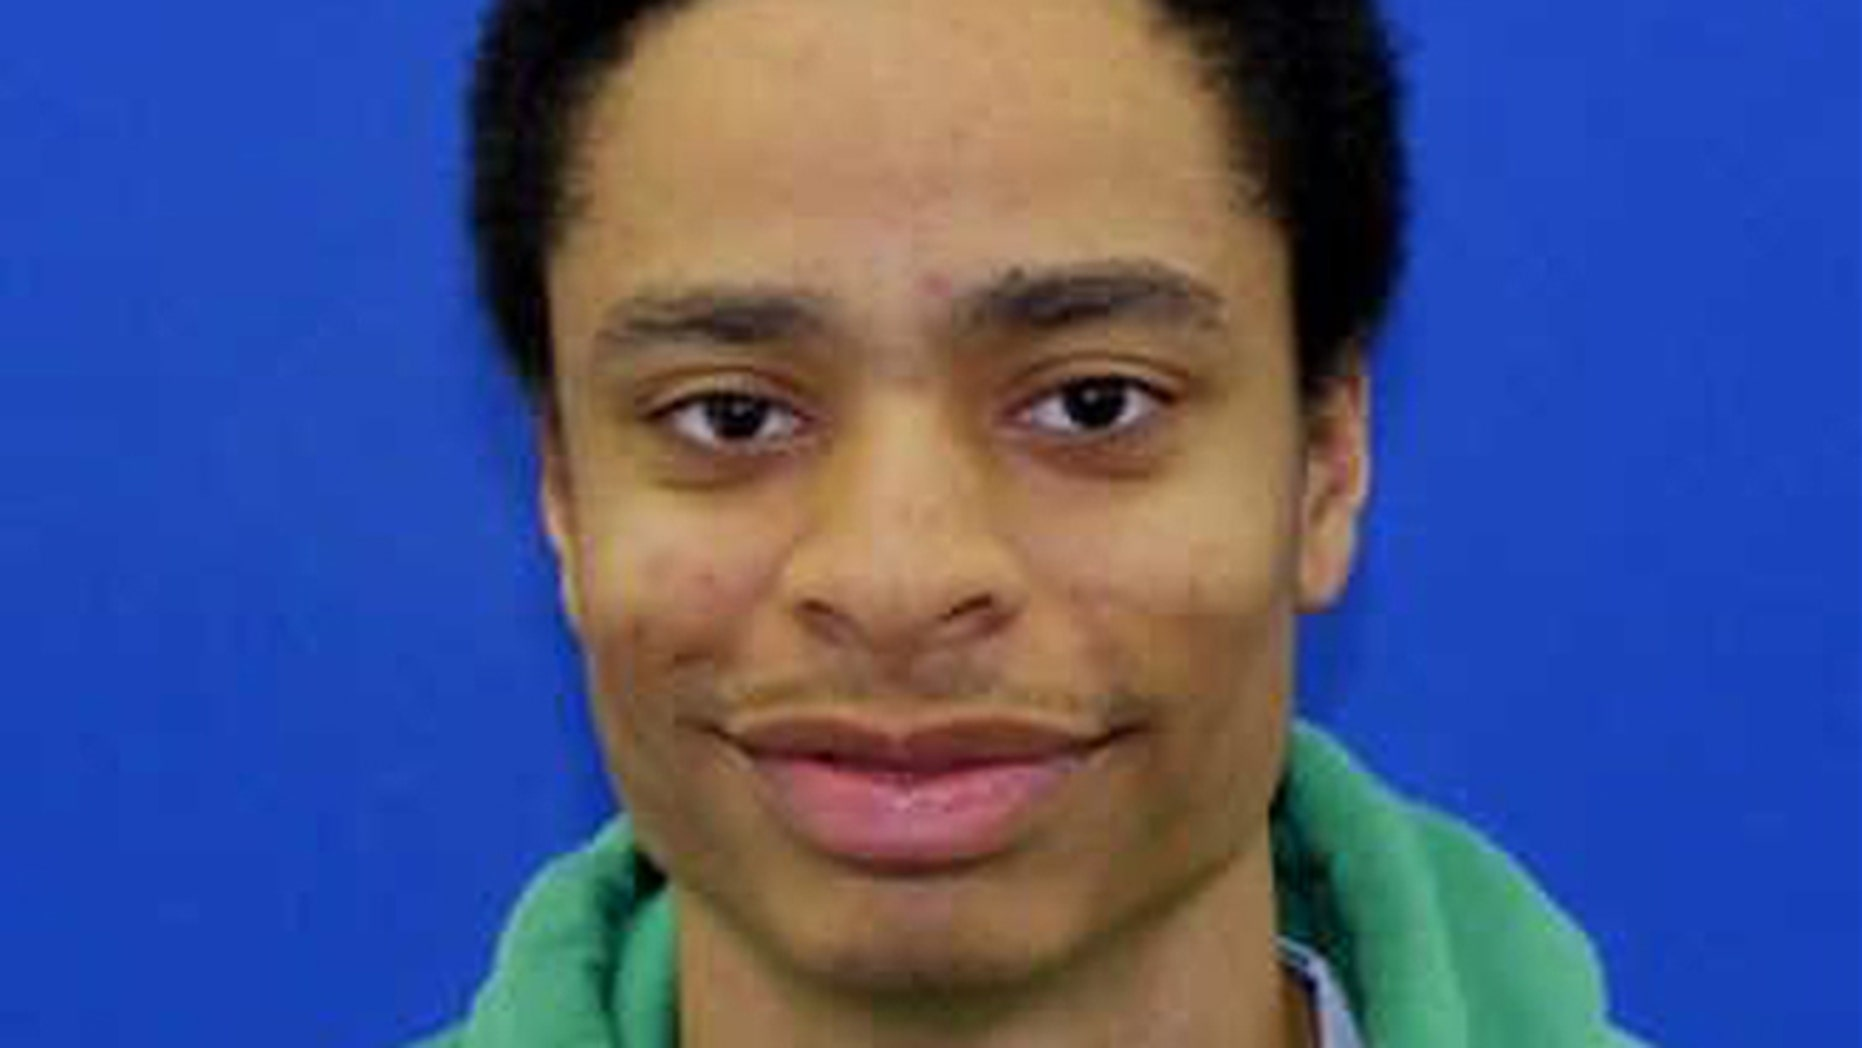 FILE: This photo released by the Howard County Police shows shooting suspect Darion Marcus Aguilar, 19, of College Park, Md.